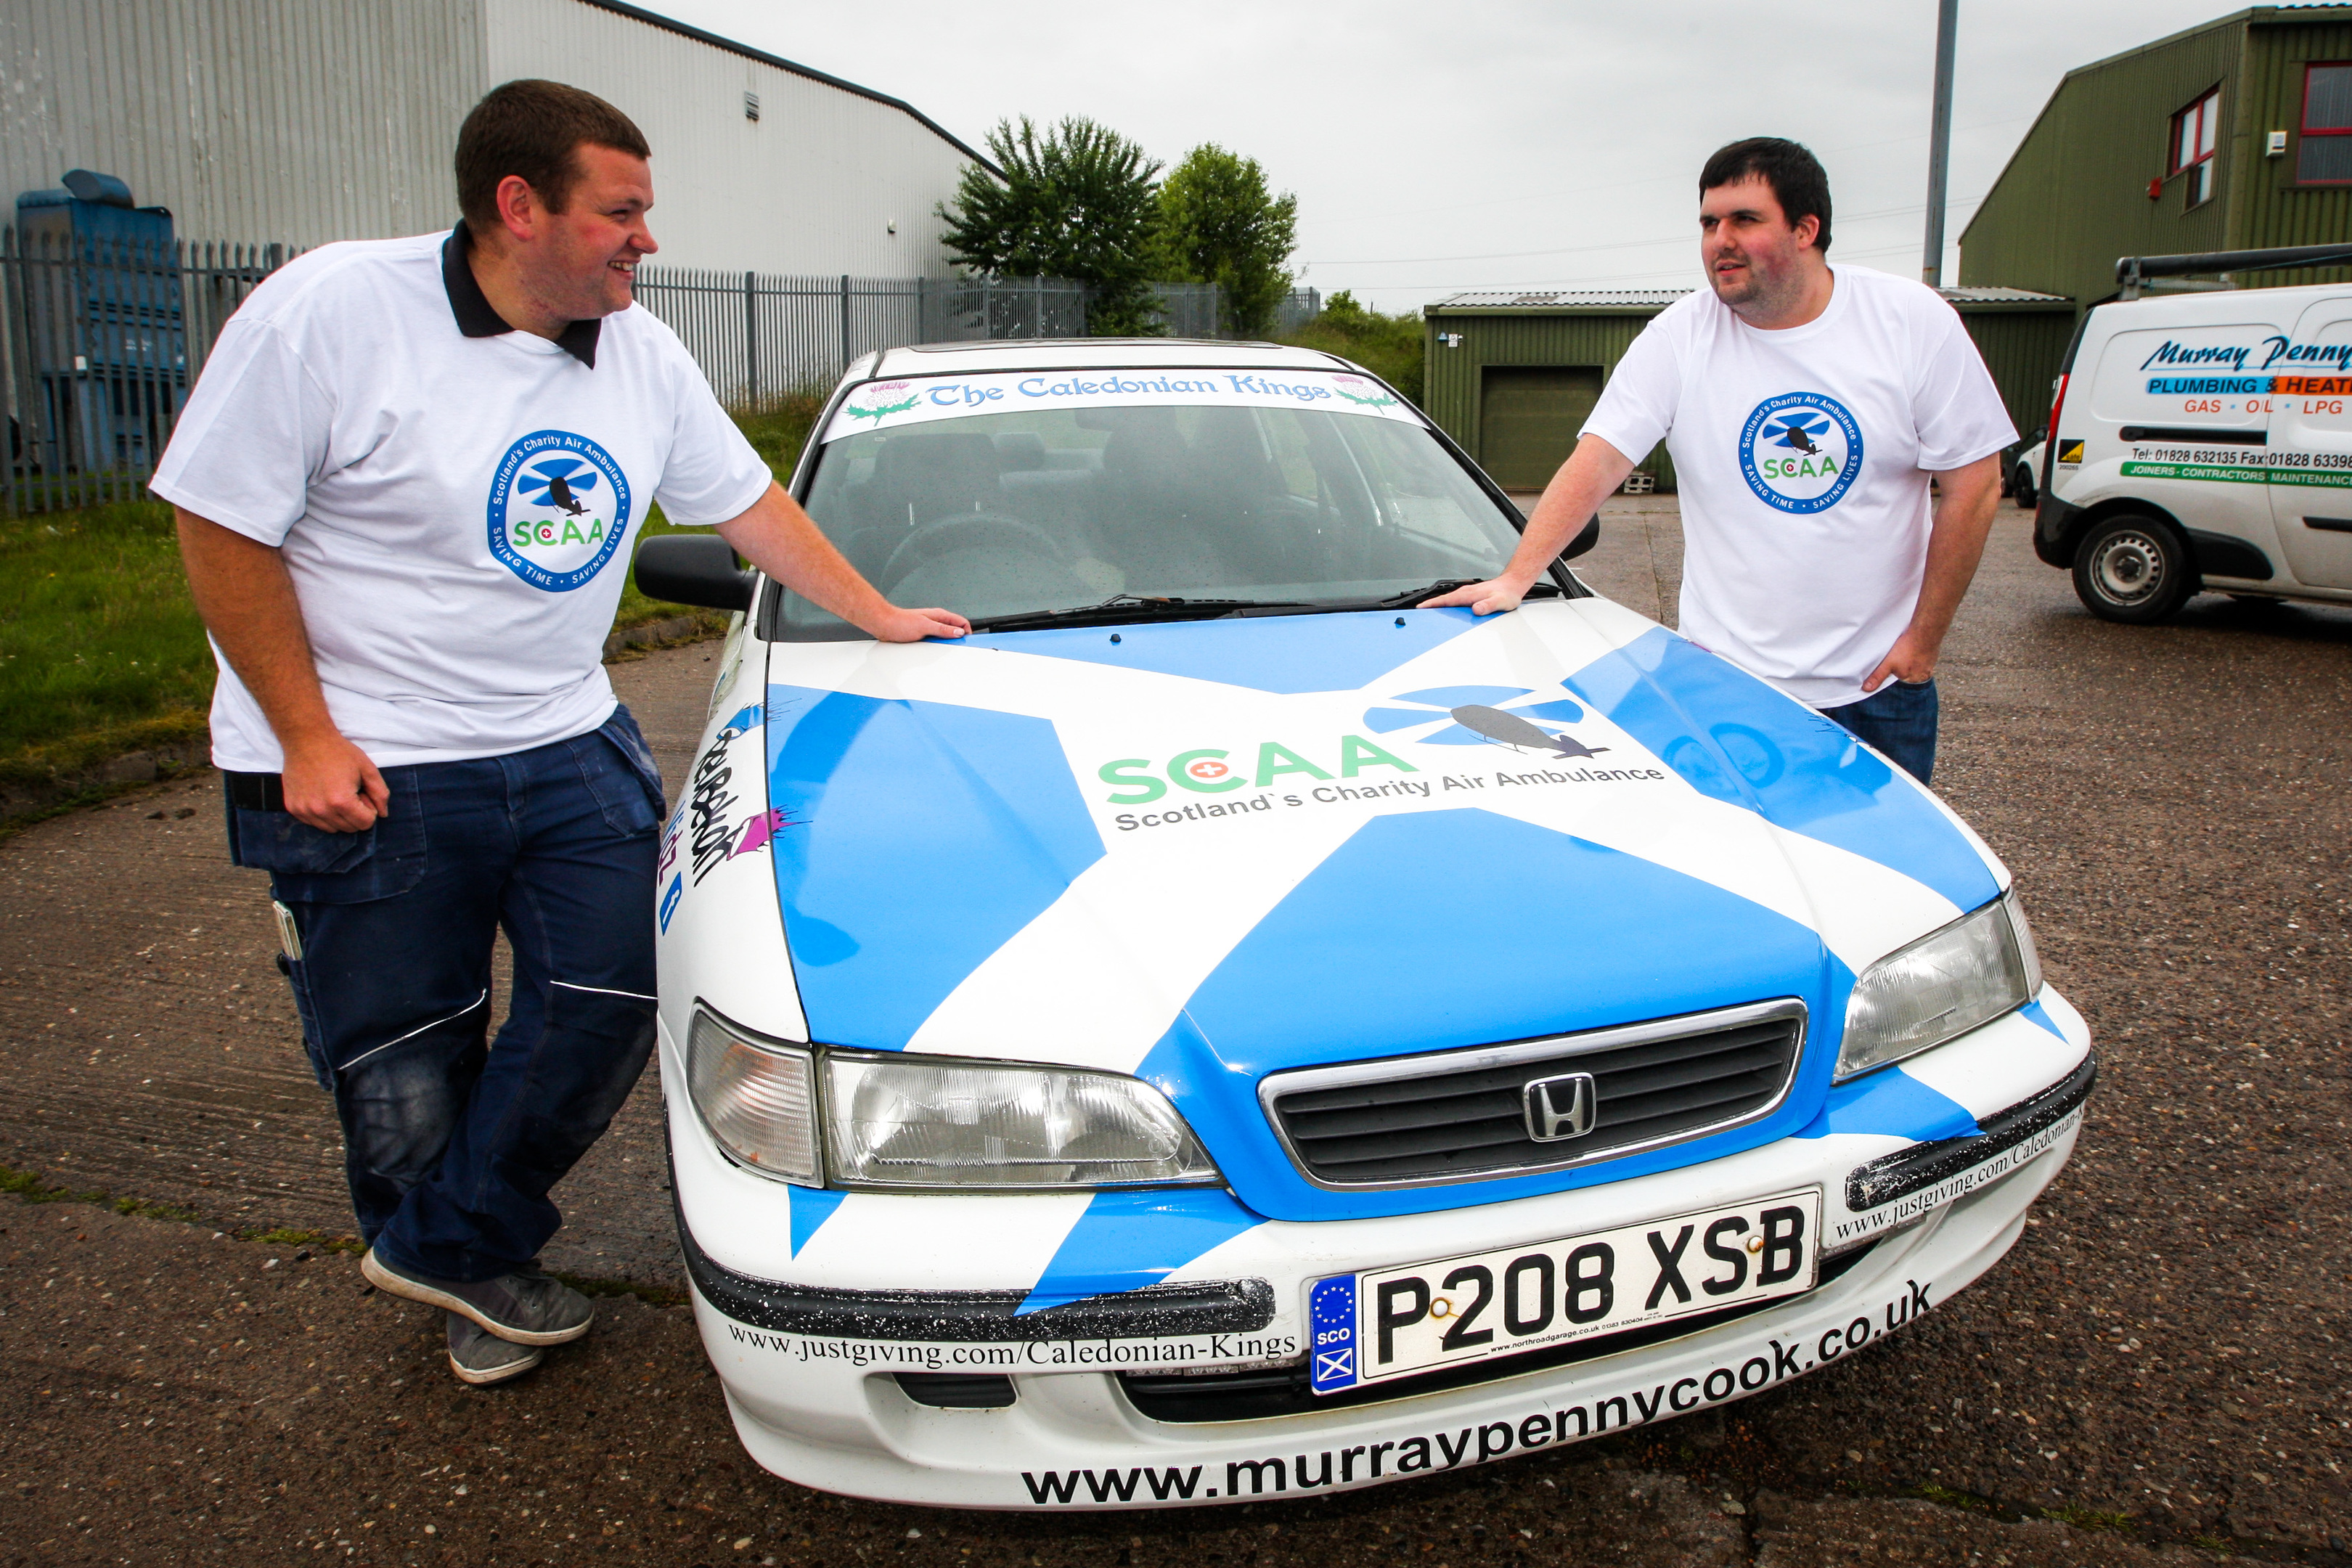 Iain Appleby (left) and David Robertson (right) with the Honda they drove last time.will be driving.